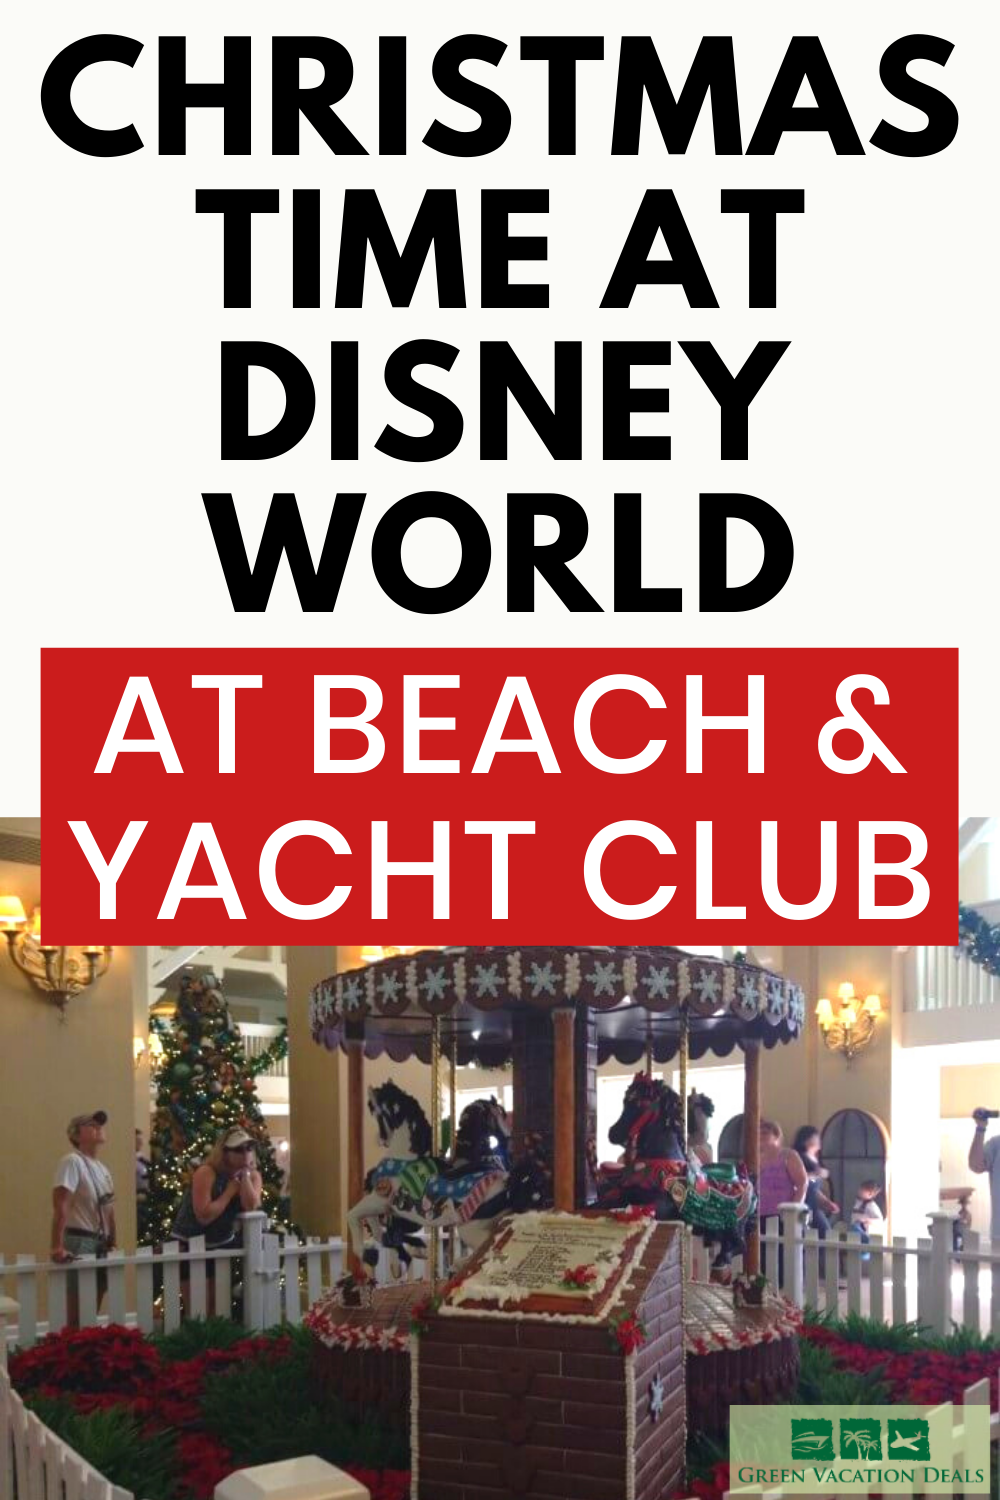 Christmas Time At Disney World Why You Should Stay At Beach Yacht Club Green Vacation Deals Disney World Christmas Vacation Destinations Family Holiday Idea